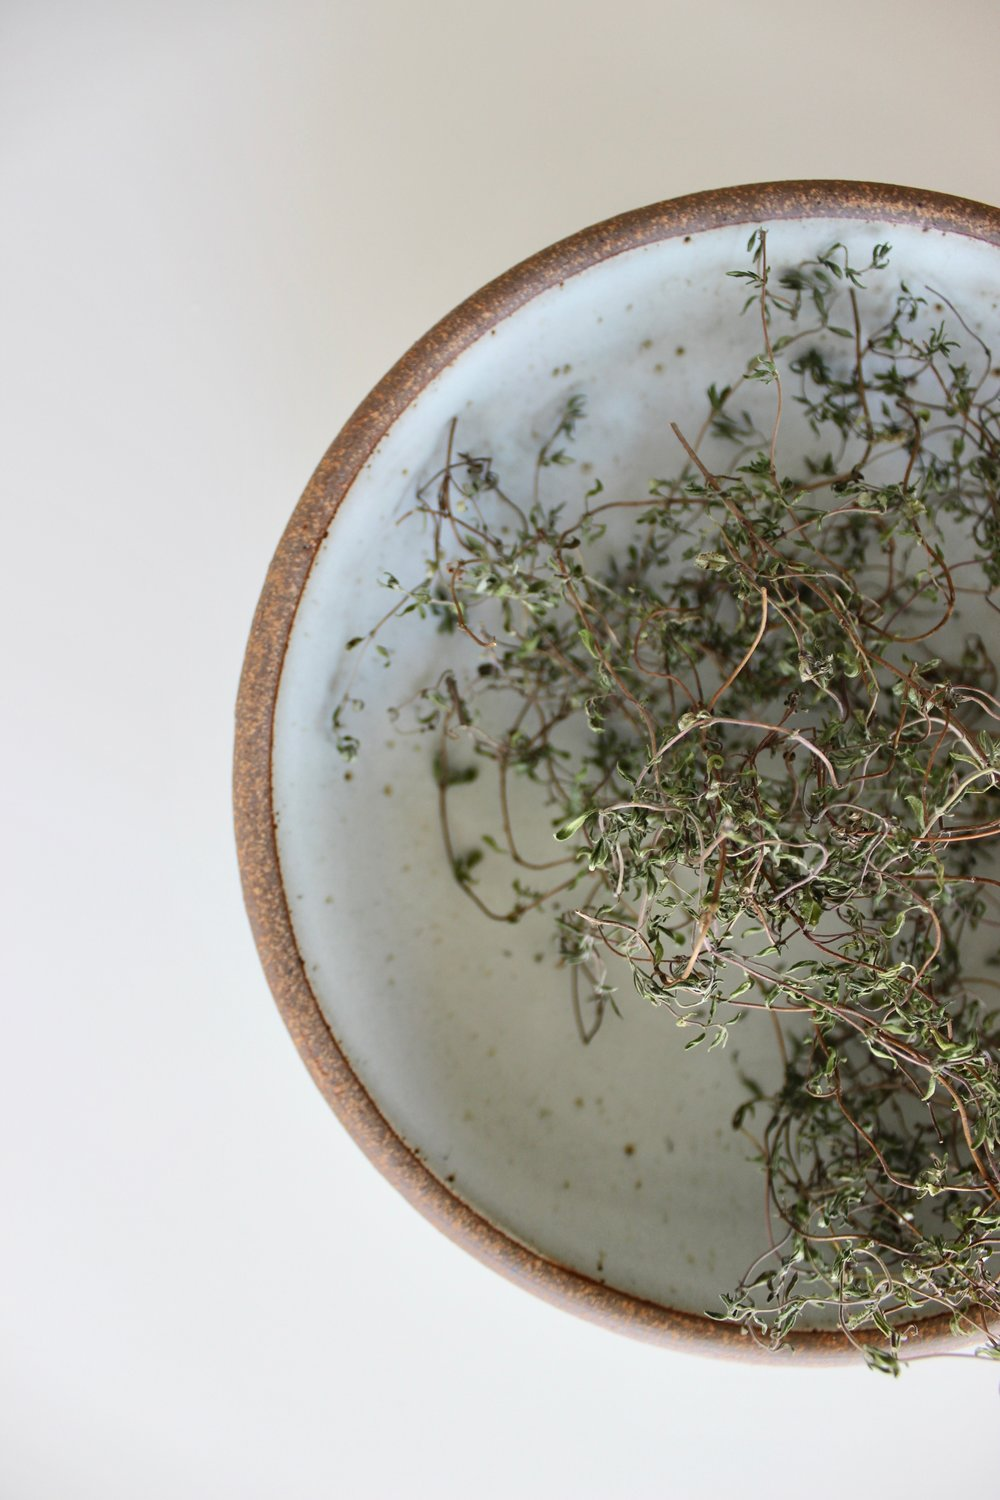 Easiest dried herbs | Zero waste kitchen DIY | Litterless